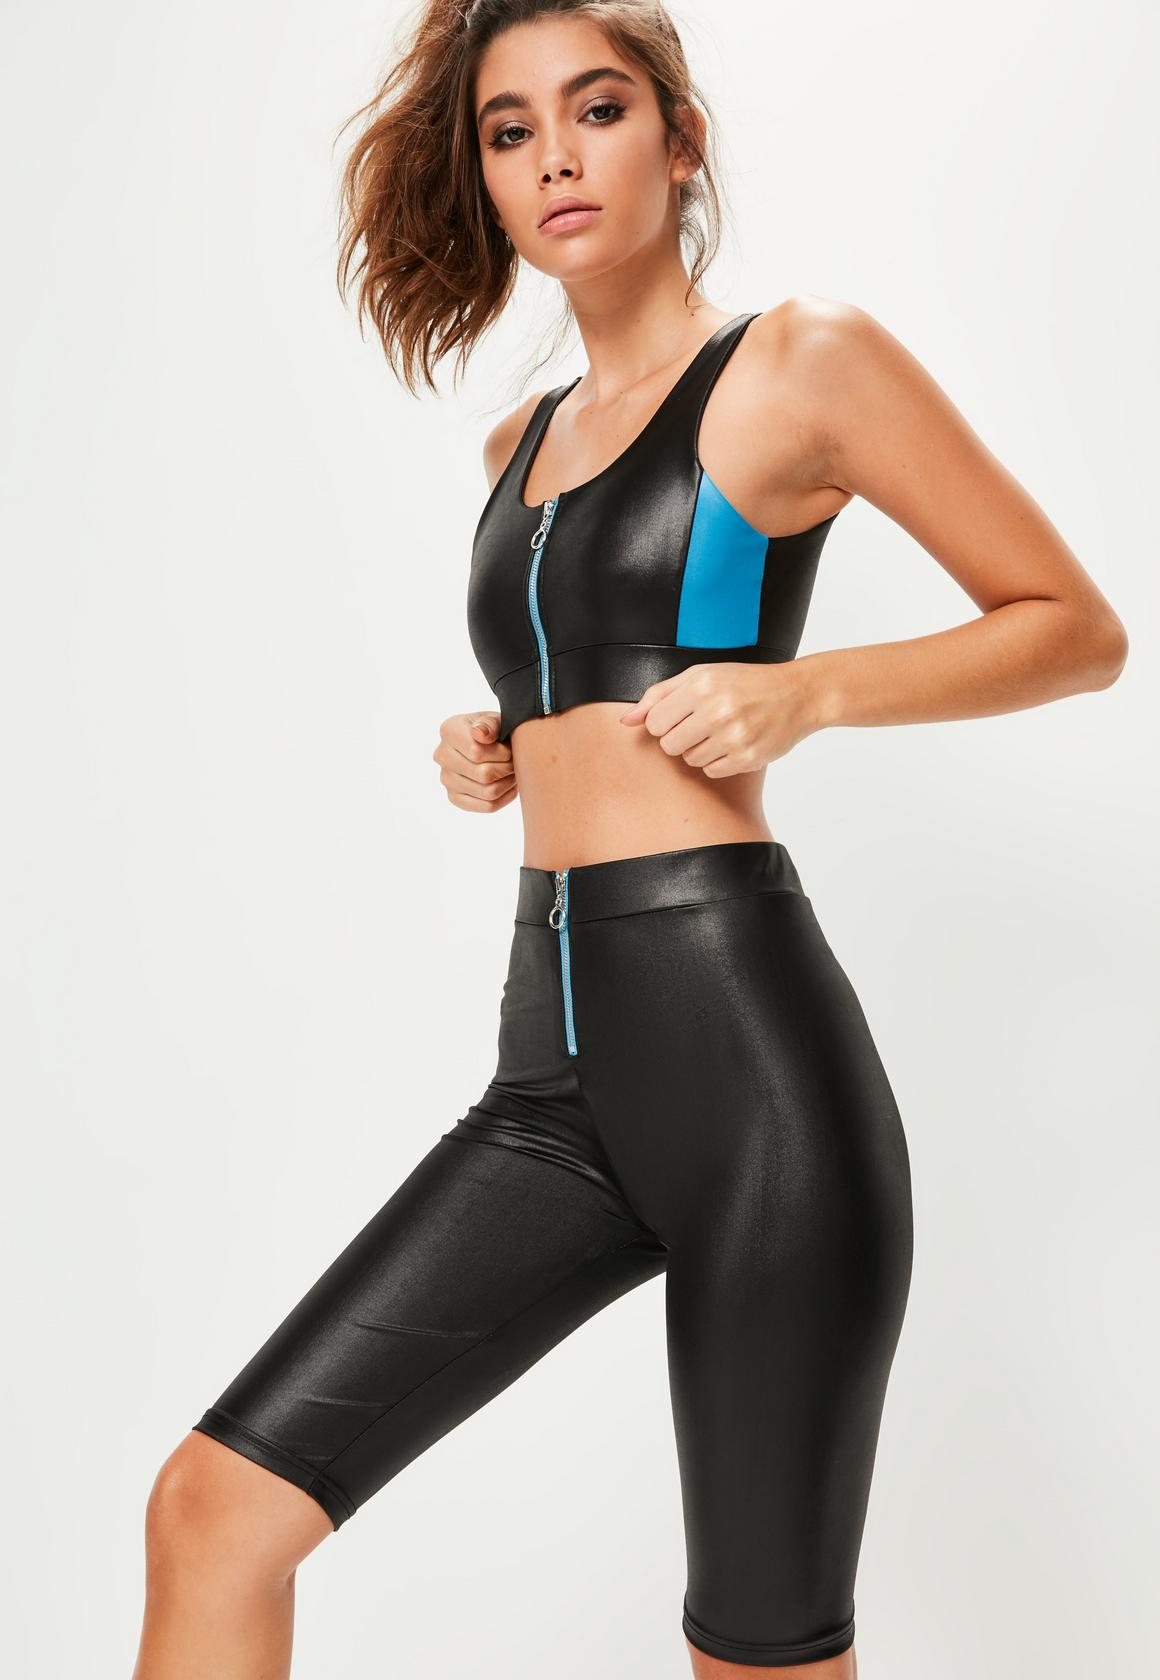 Fashion meets Fitness…match made in Heaven